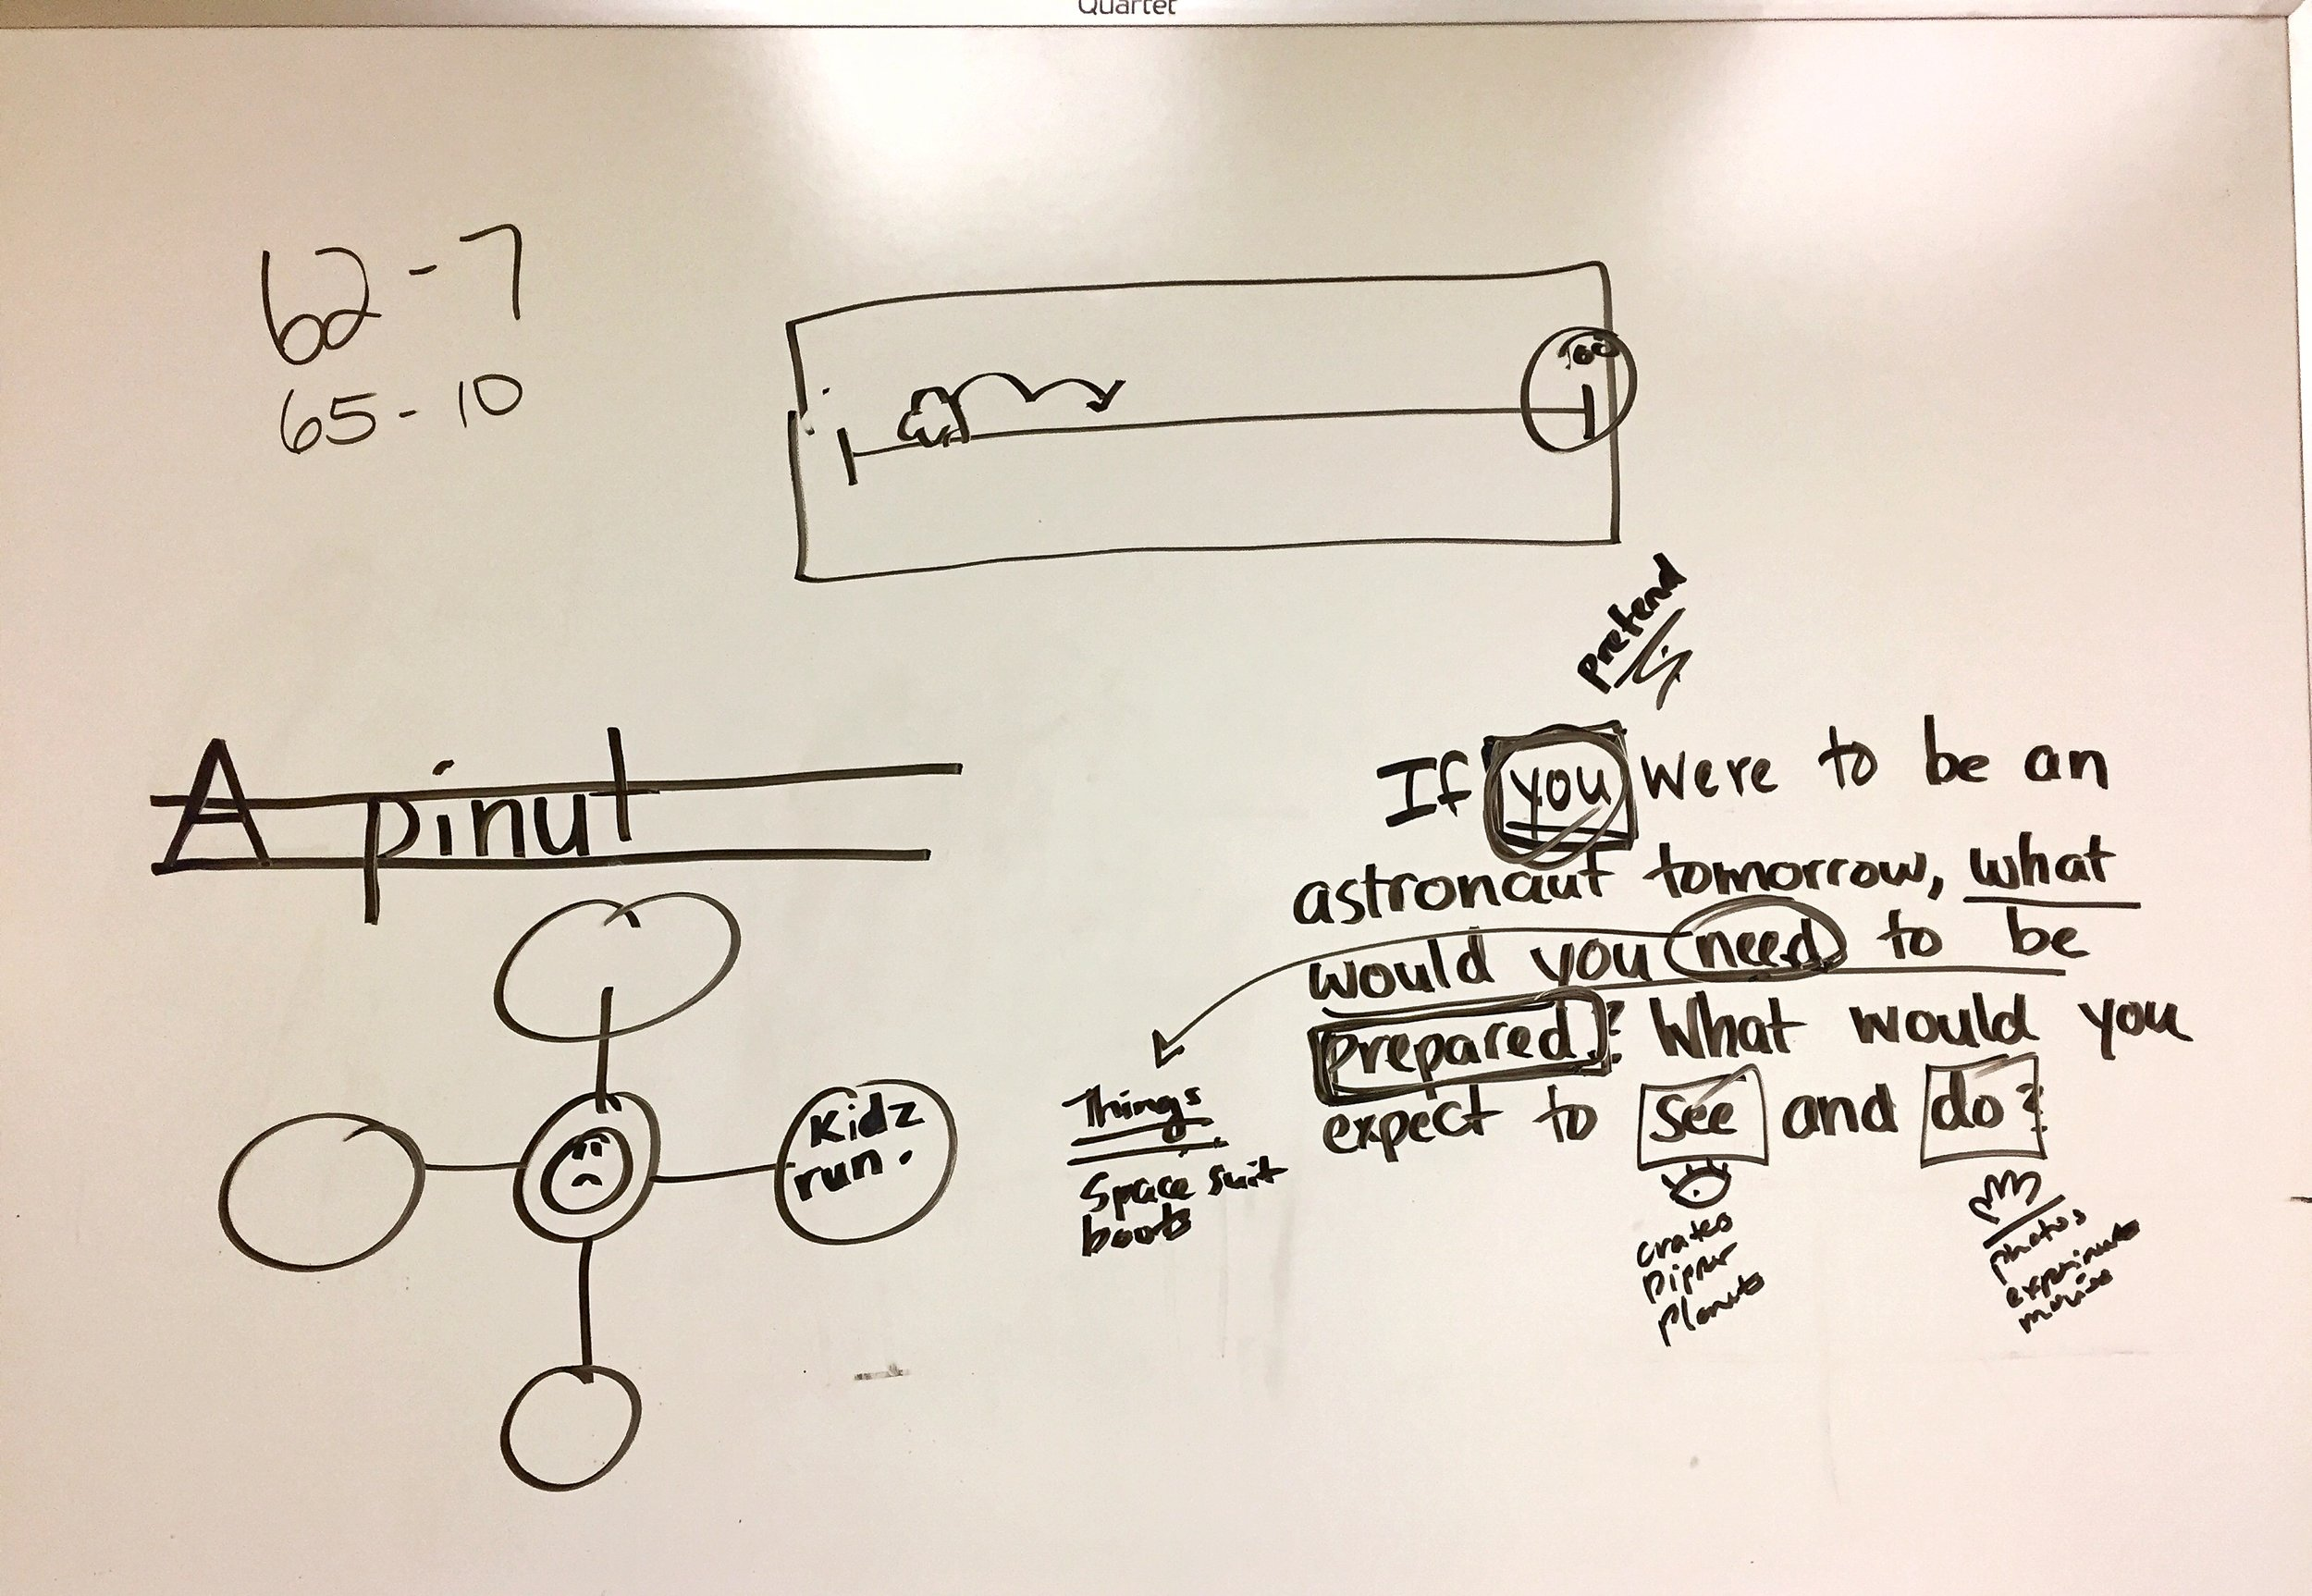 Notes from a white board in our curriculum team's office.